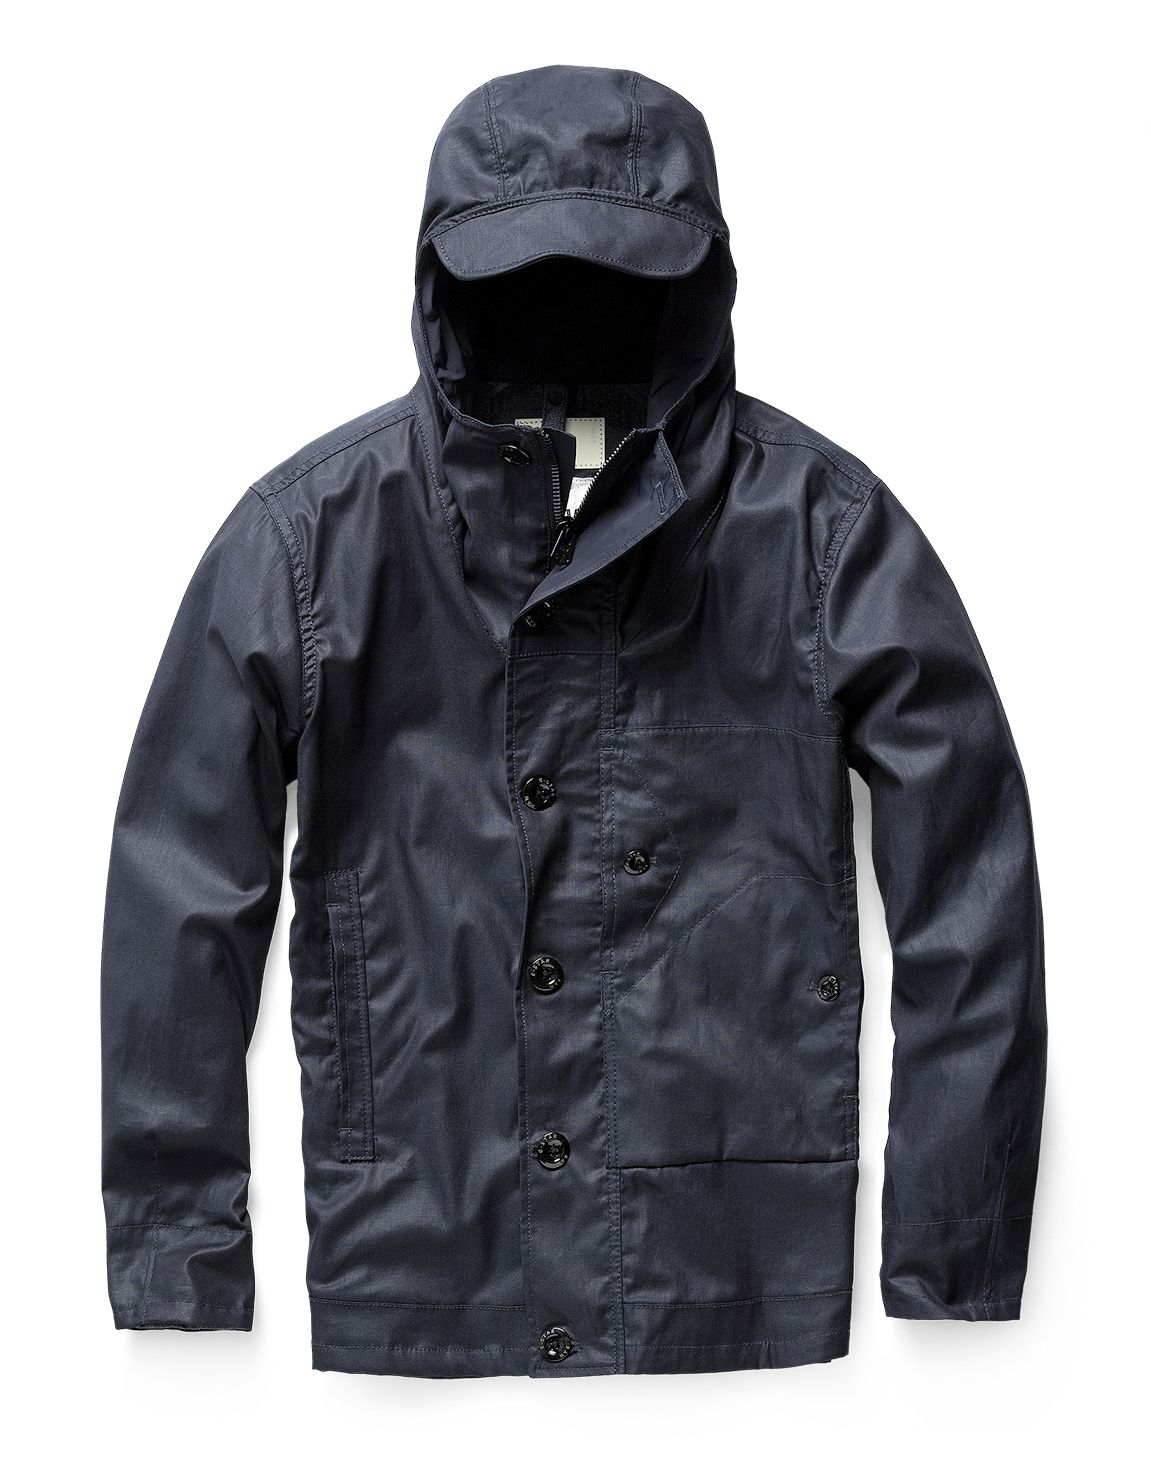 27535512fe9eb Hooded jacket with a pocket mix and button-down placket. The hood features  a rear cinch and the back hem has a single vent.